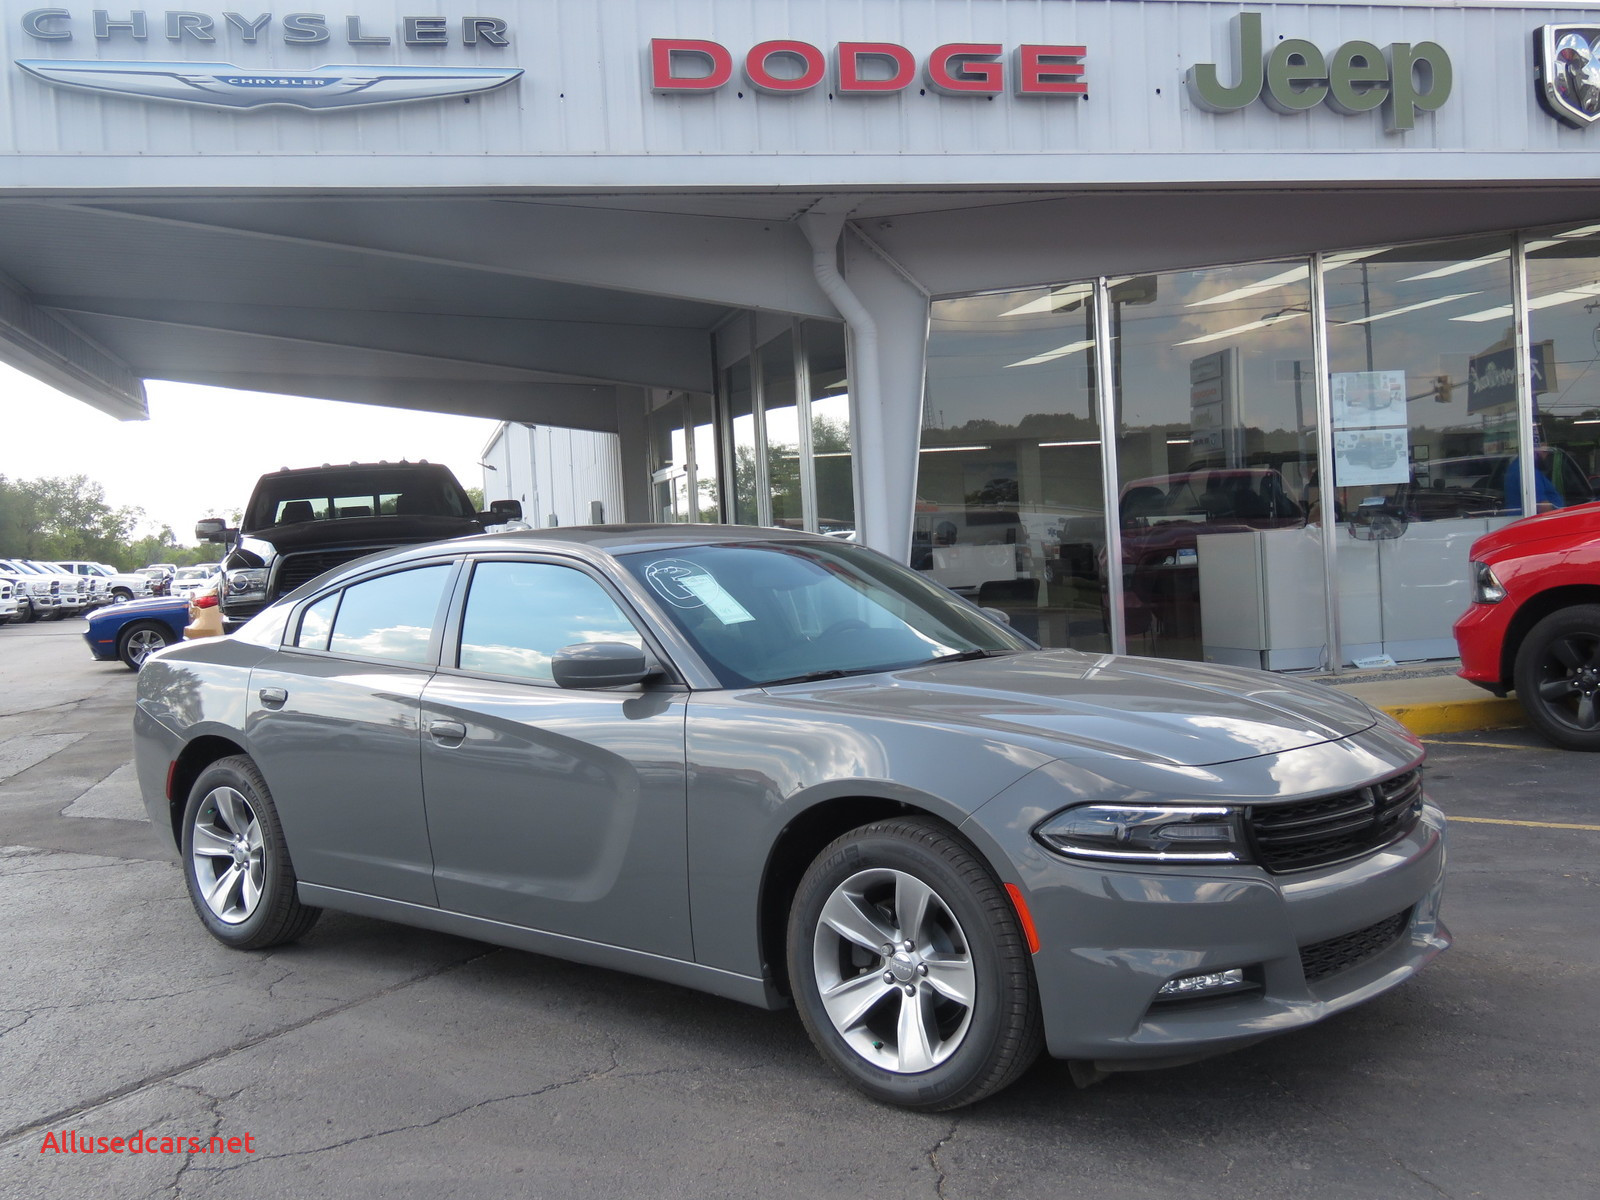 2018 Dodge Charger Sxt Lovely New 2018 Dodge Charger Sxt Plus Rwd